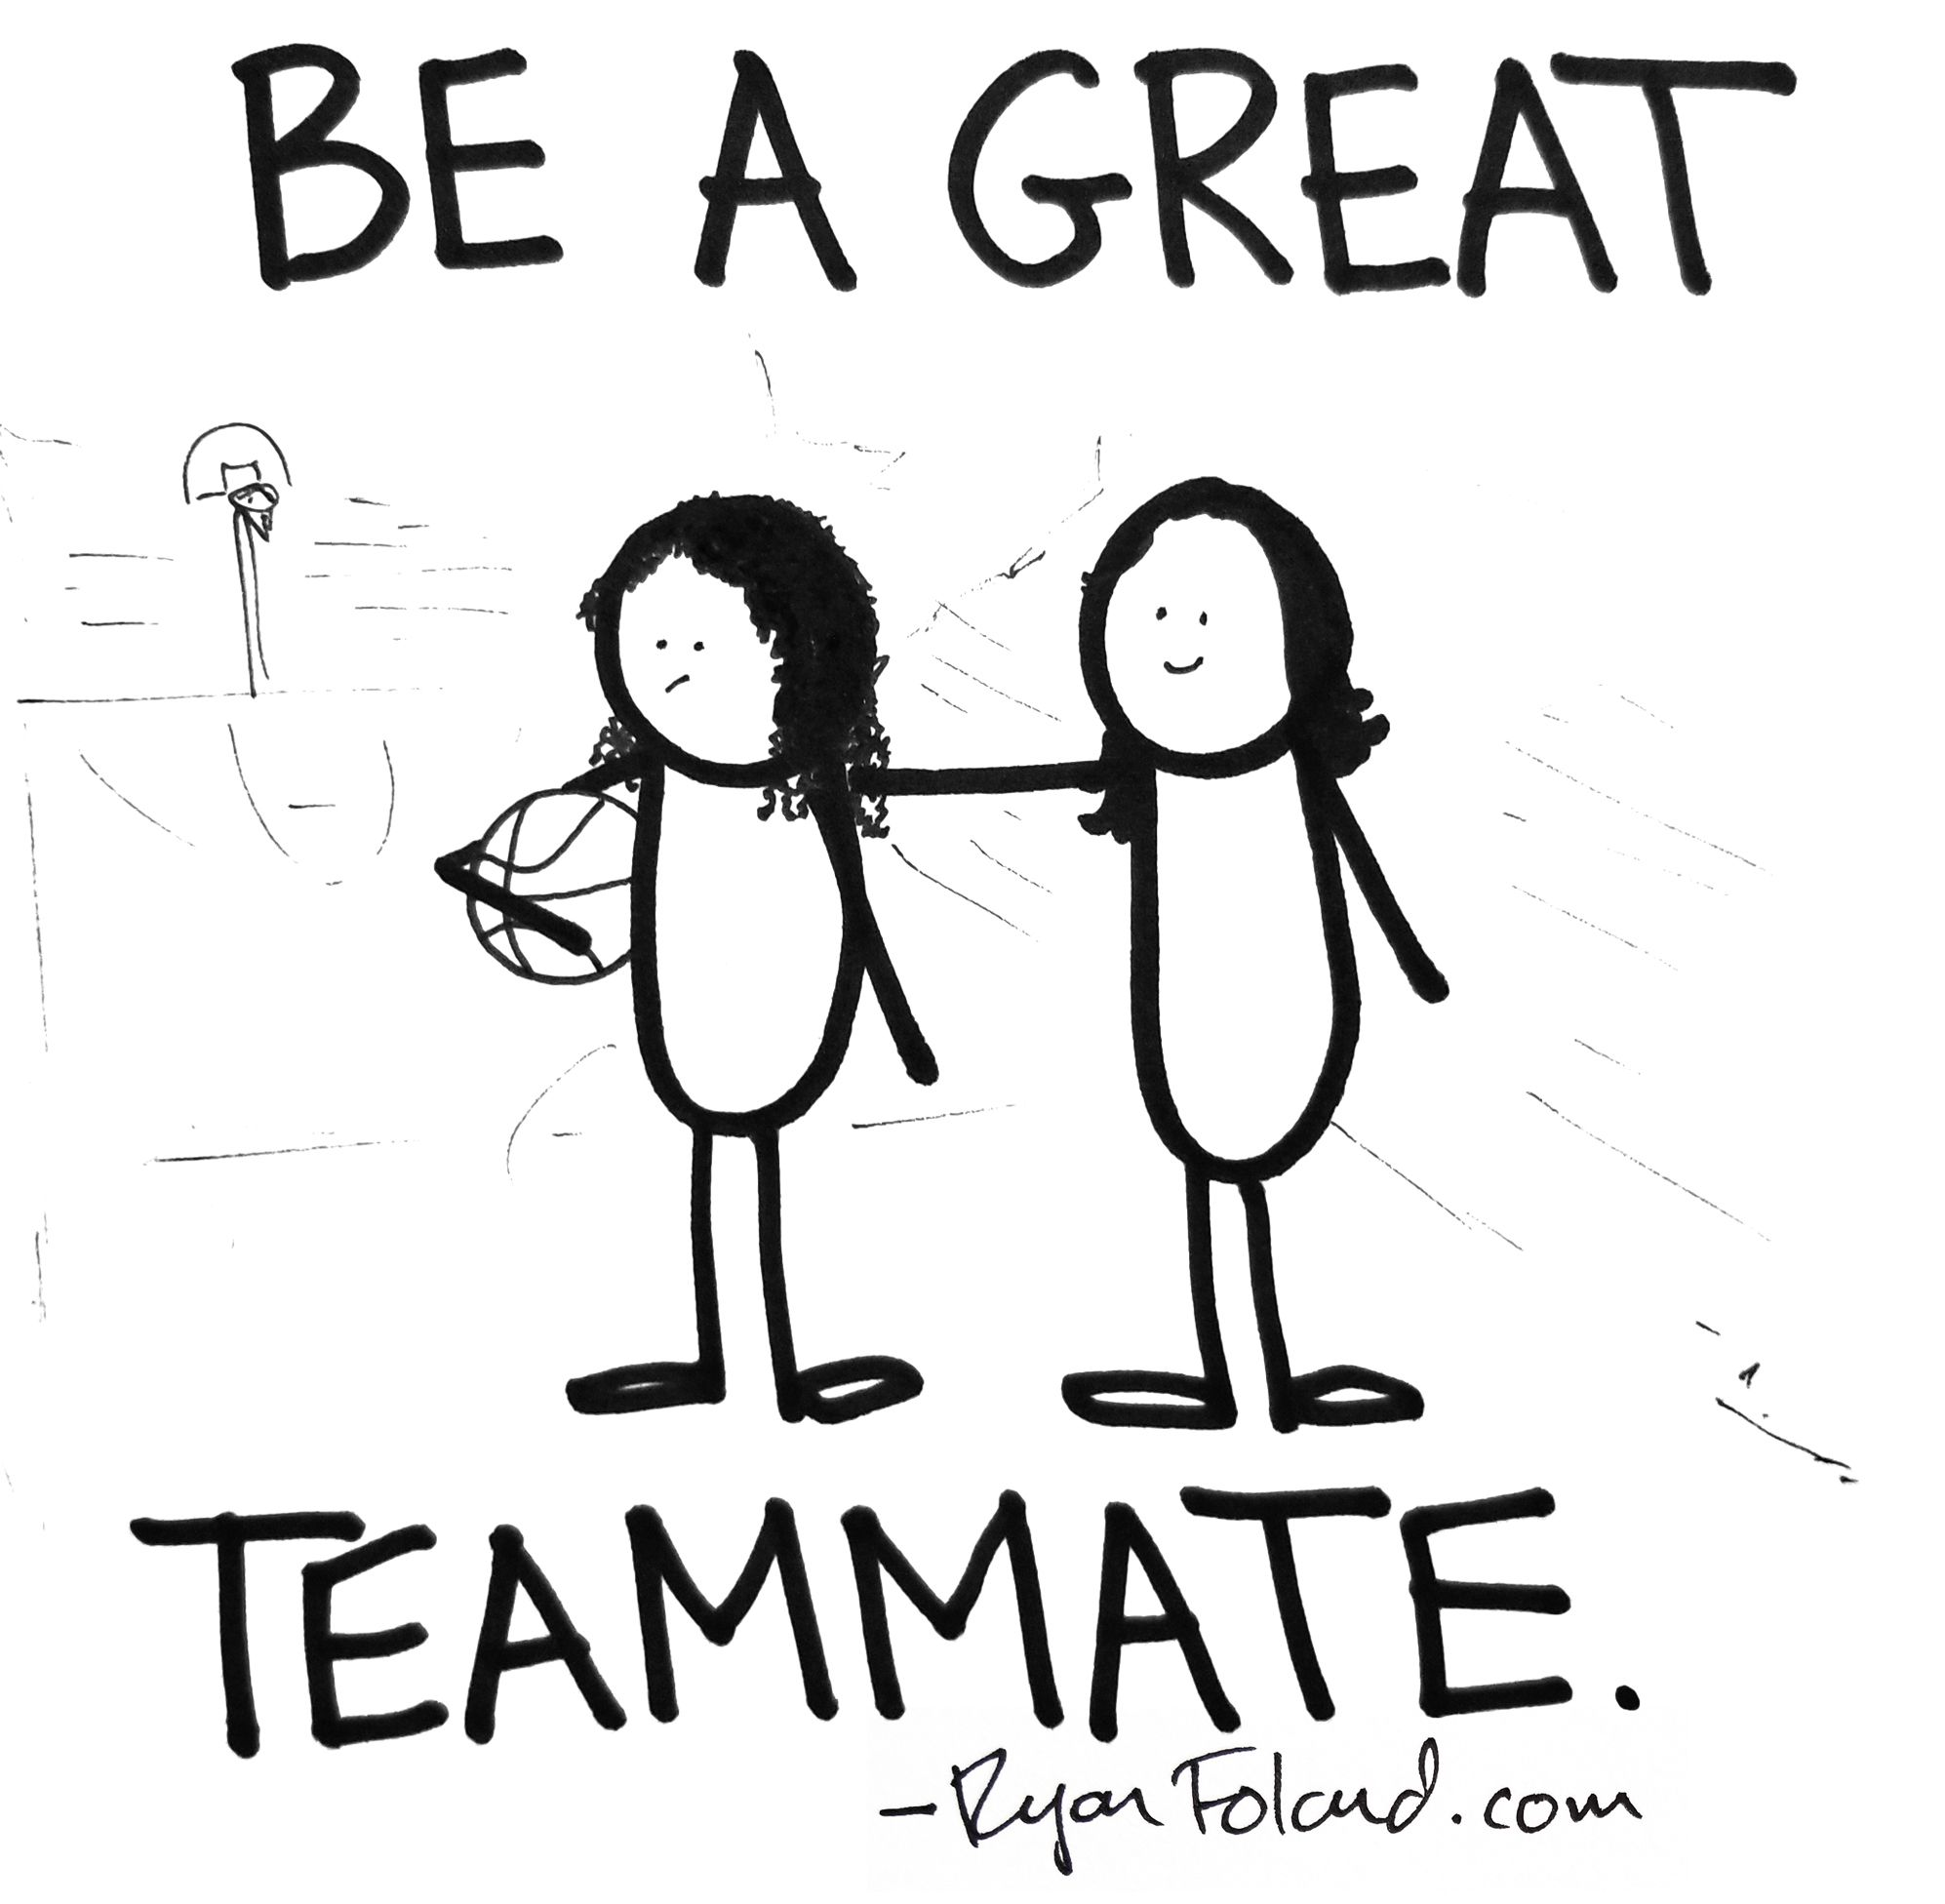 Being a Great Teammate by Ryan Foland